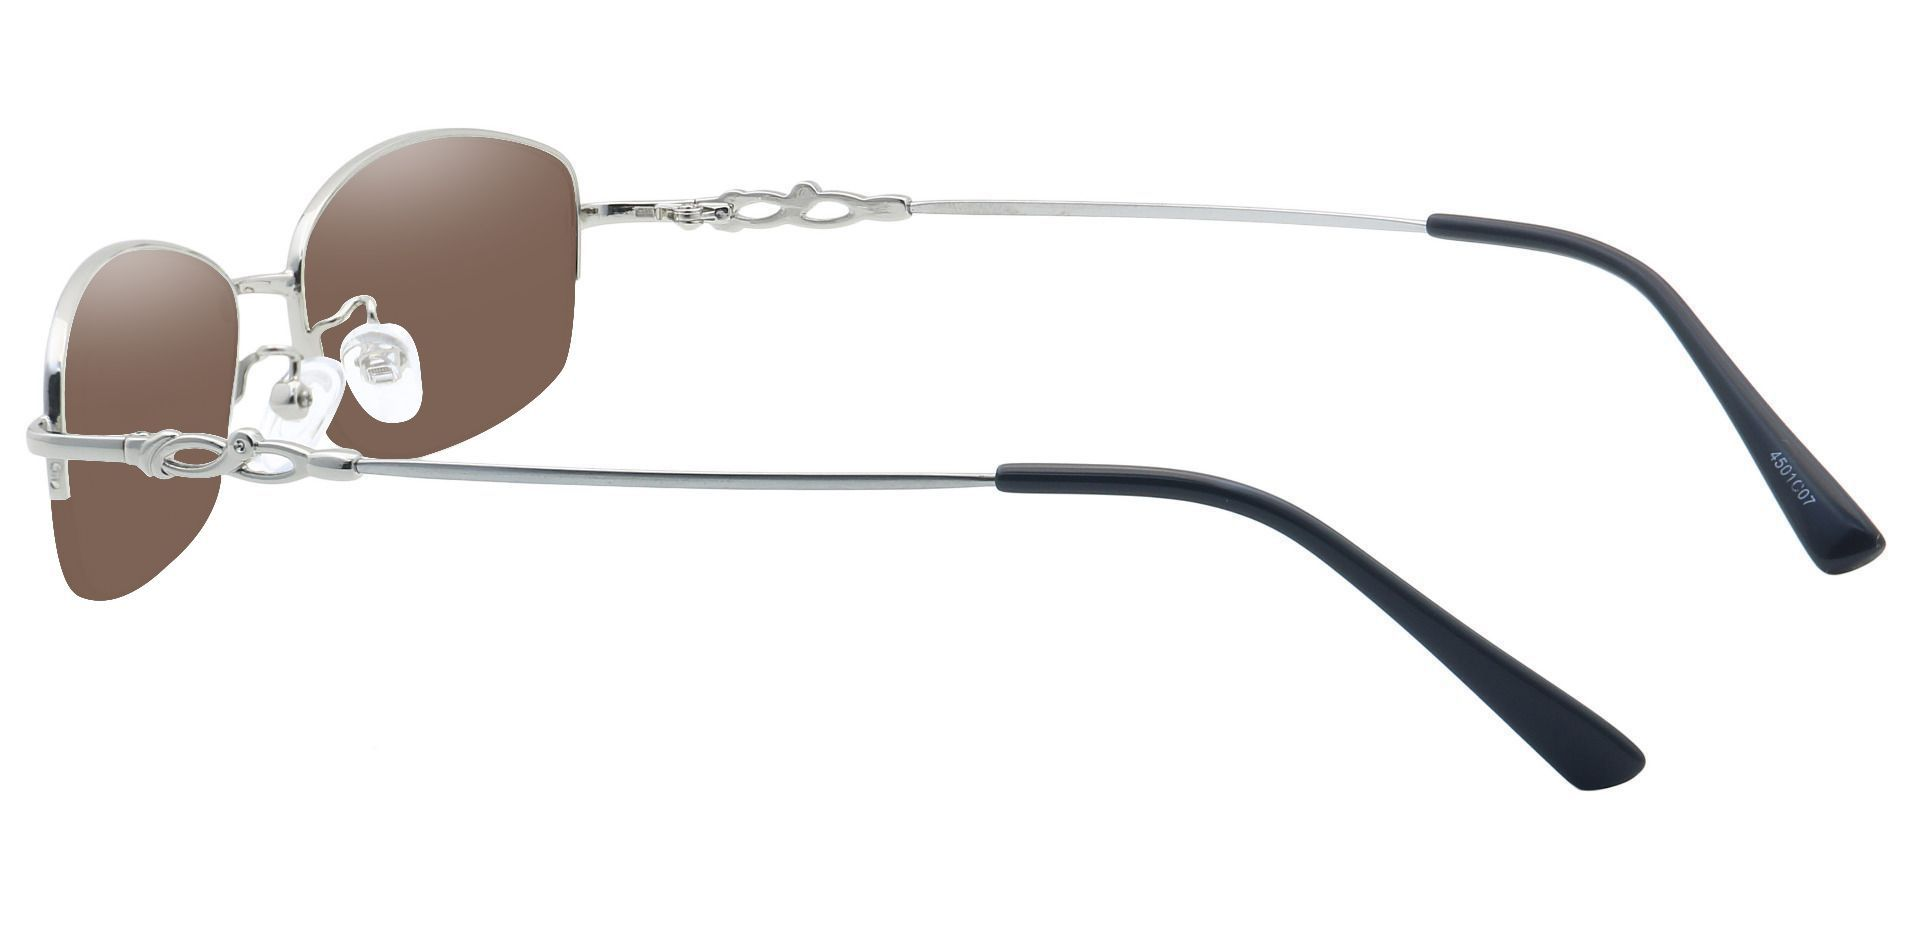 Meadowsweet Oval Prescription Sunglasses - Clear Frame With Brown Lenses